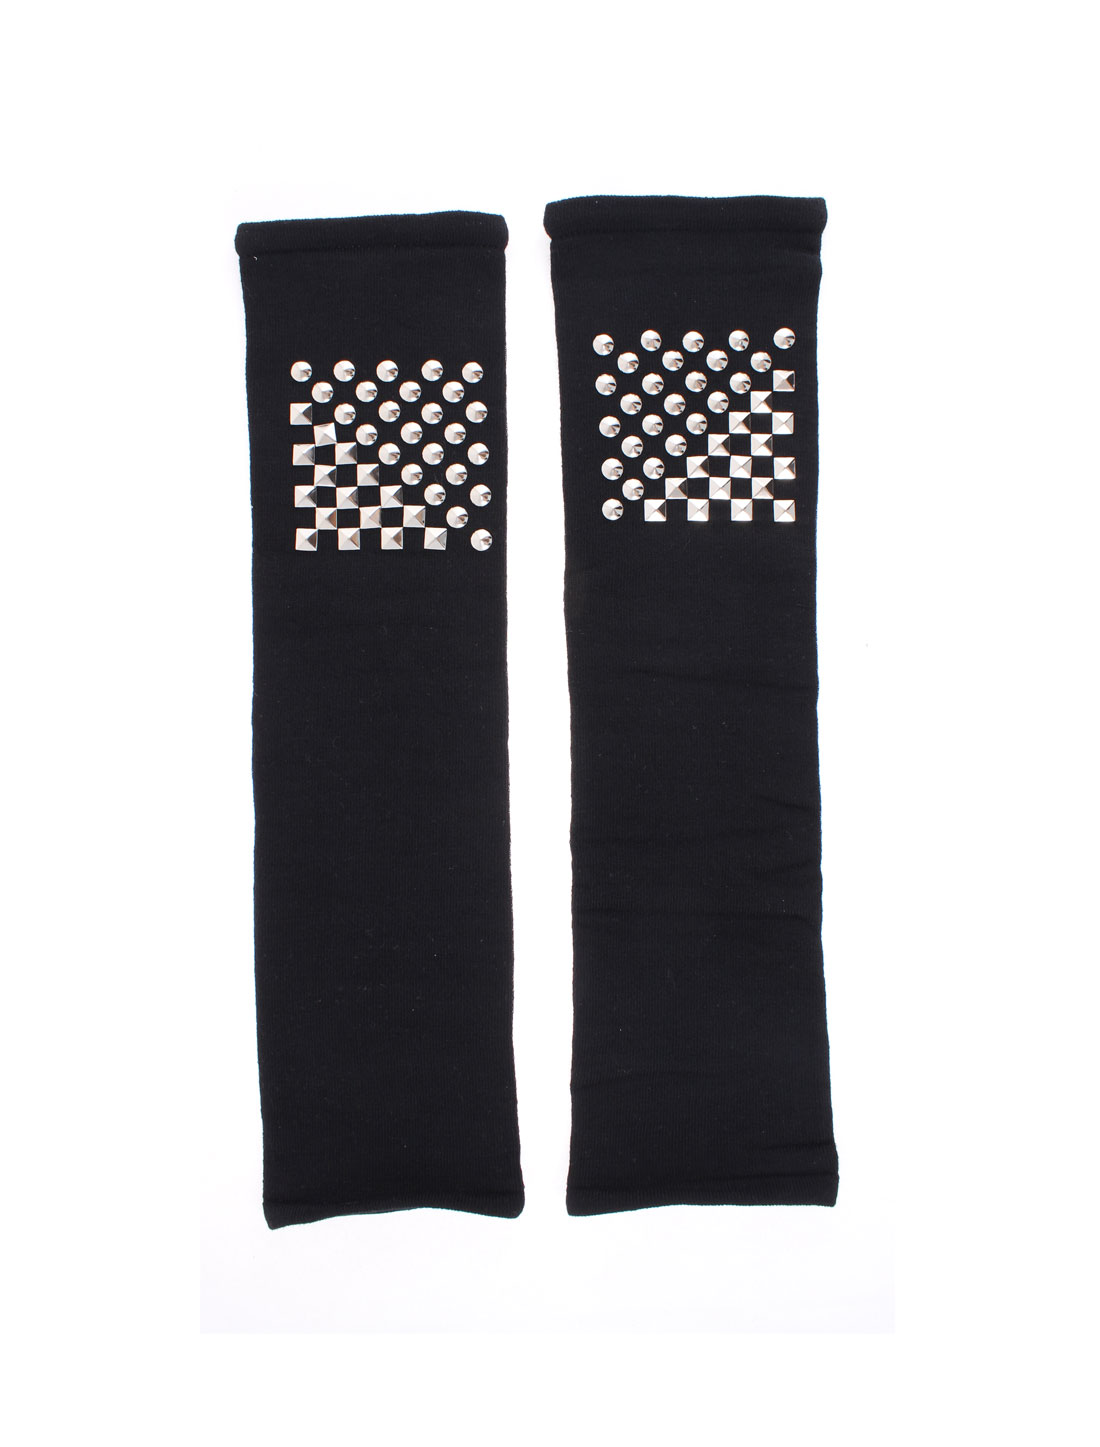 Pair Black Rivets Elastic Leg Sleeves Warmer Cycling Running CrossFit Light Compression Shin